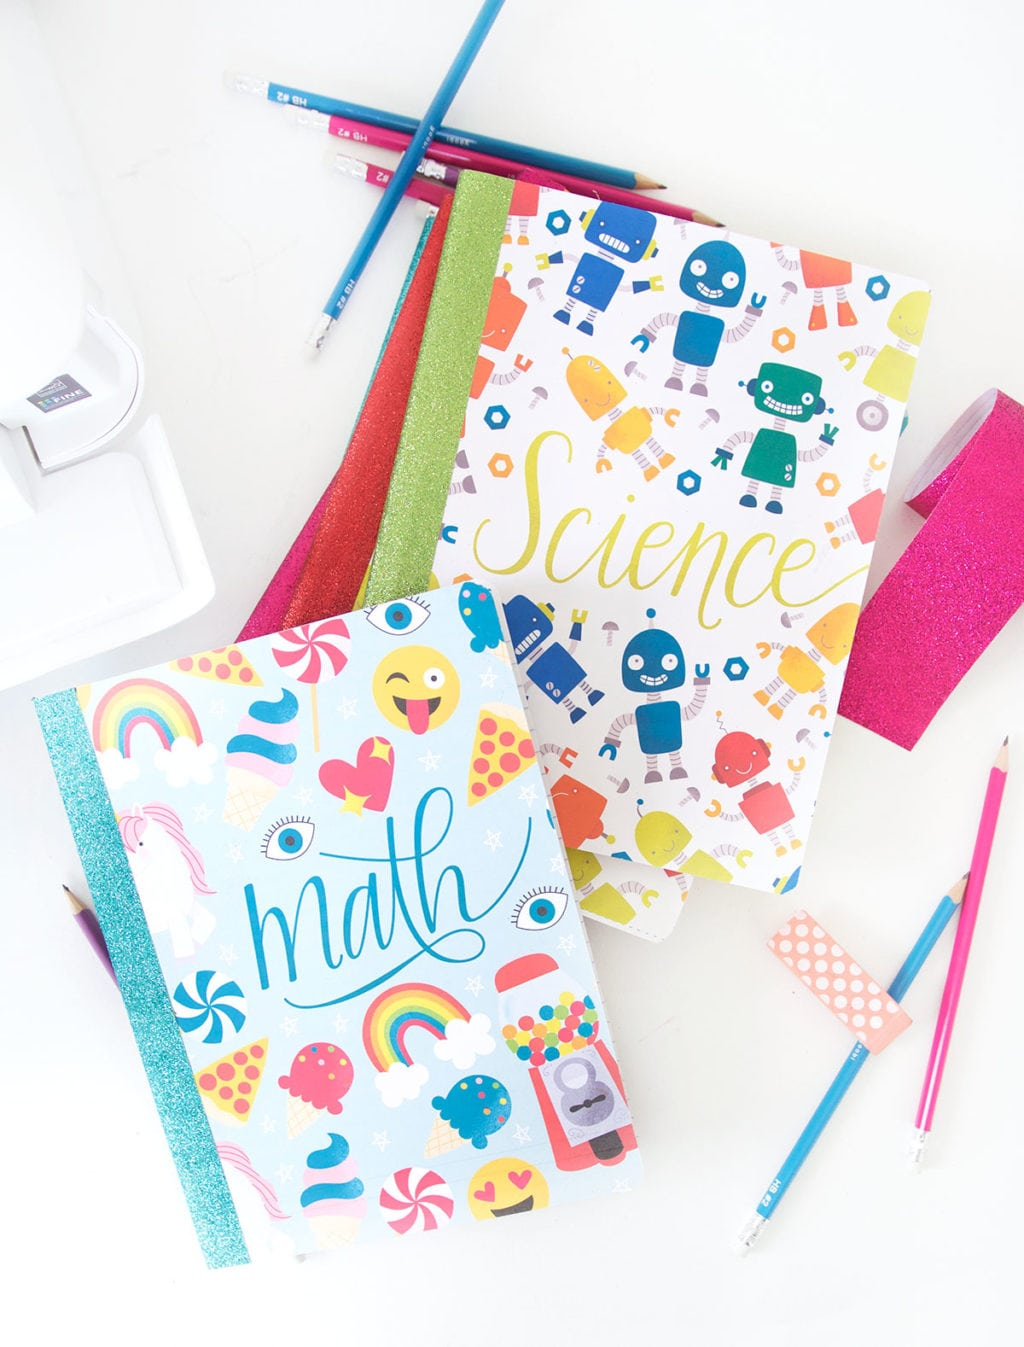 Diy glitter notebook cover - These Printable Composition Notebook Covers Are Perfect For School Age Kids And Grown Ups Too